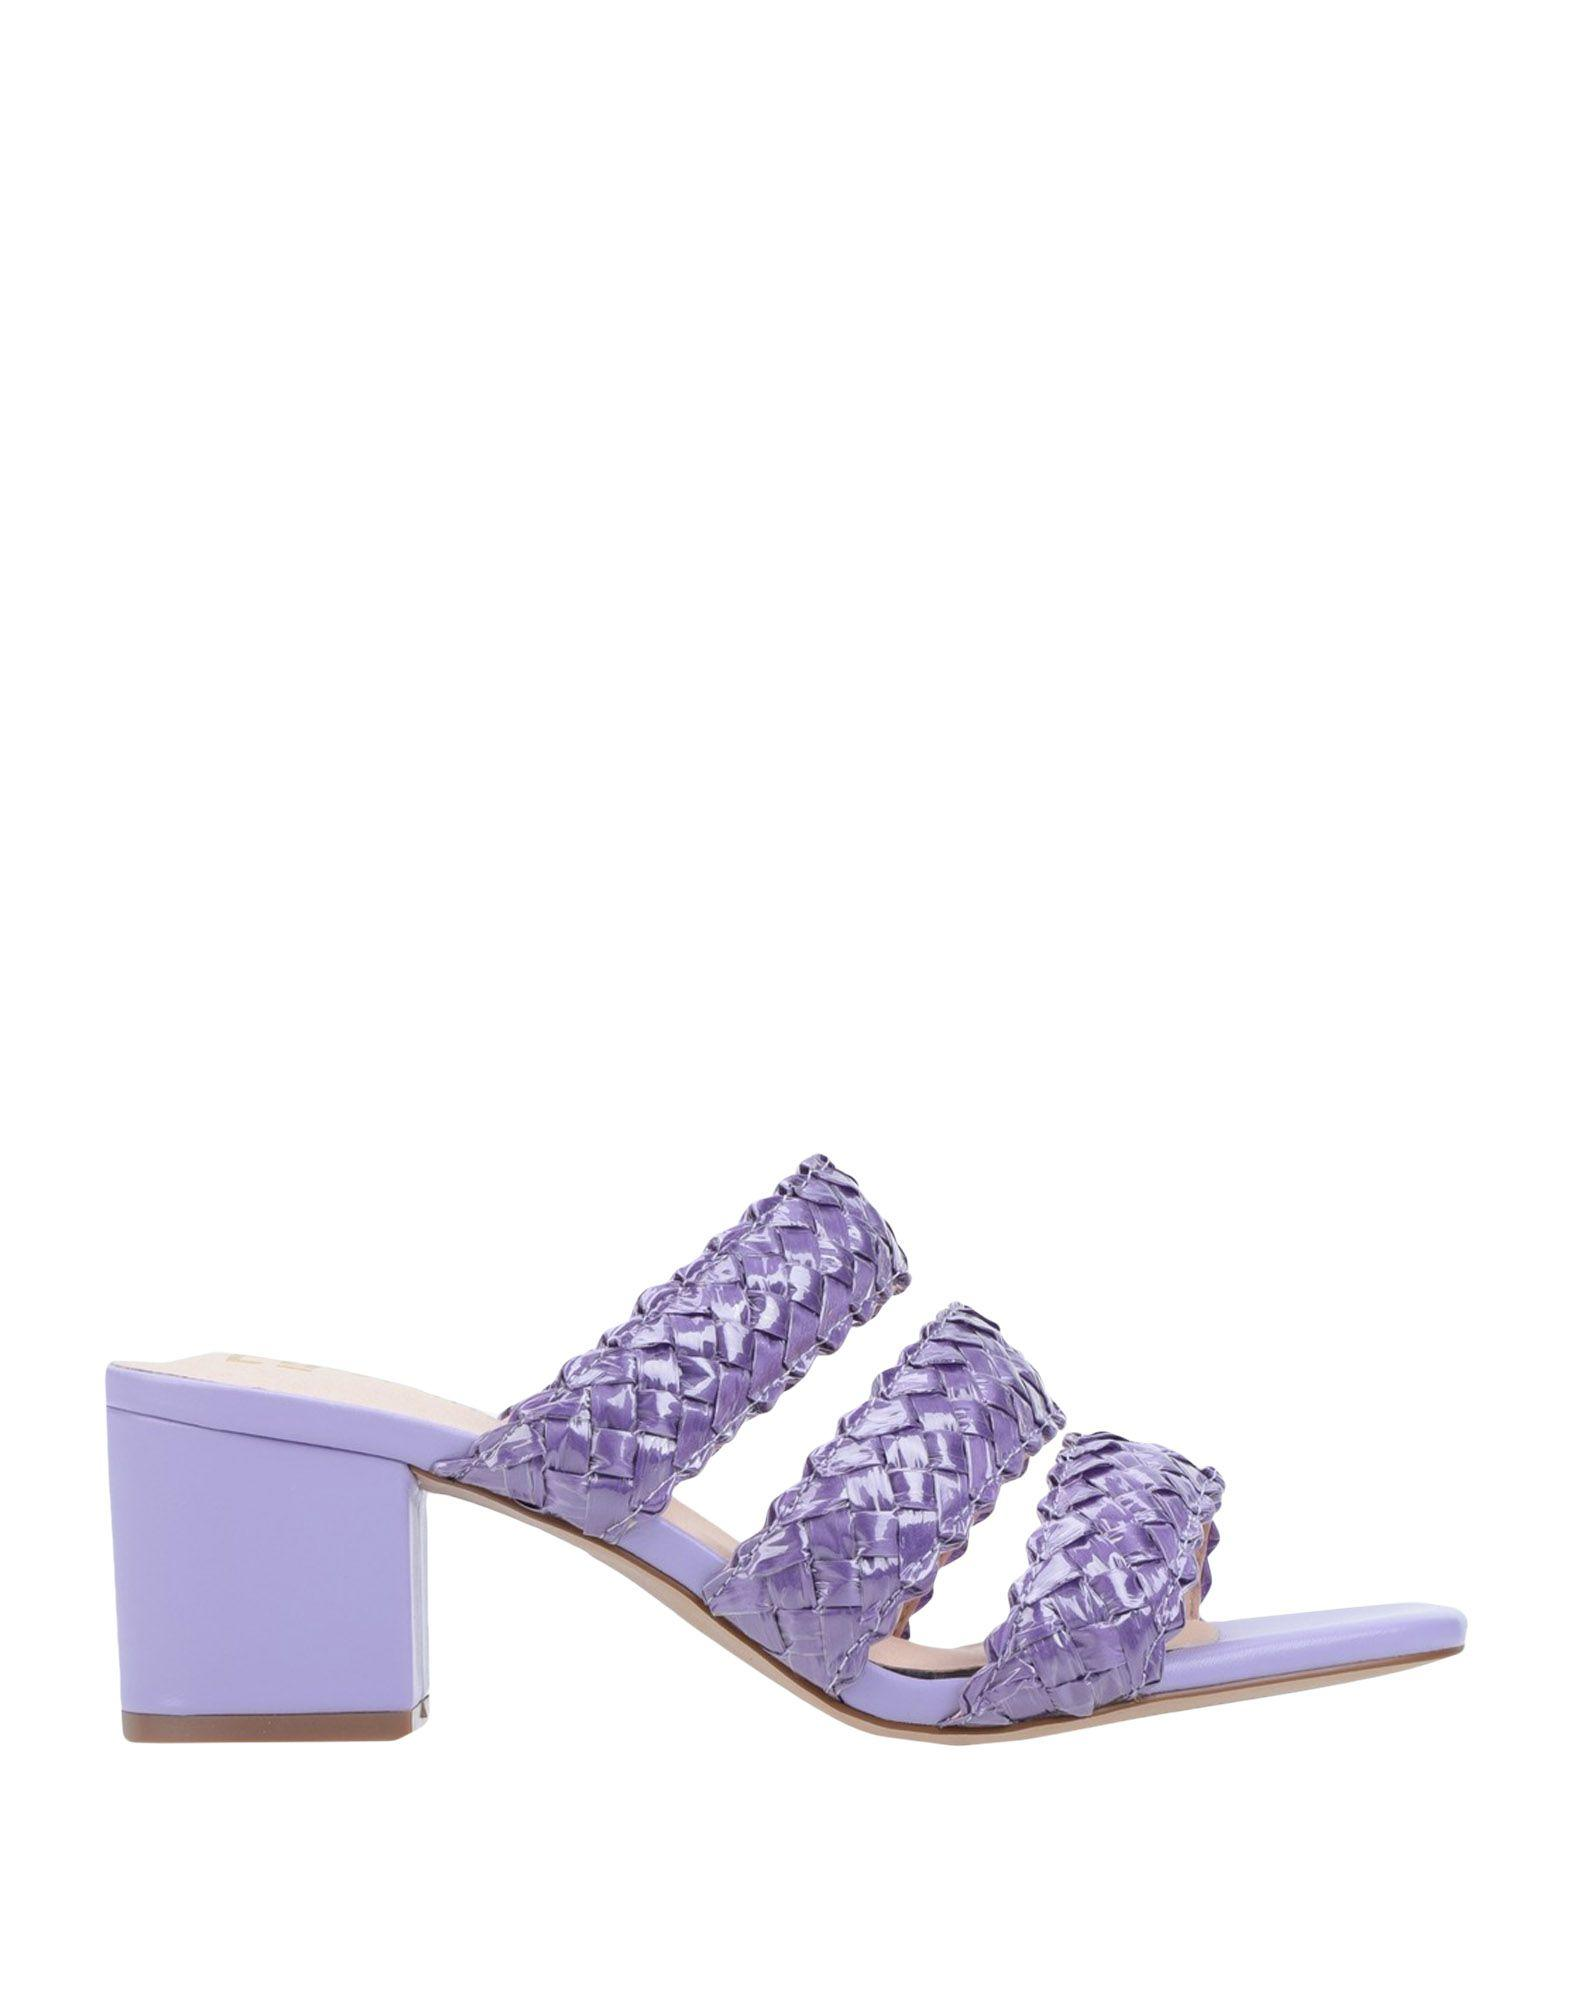 E8 By Miista Leather Sandals in Light